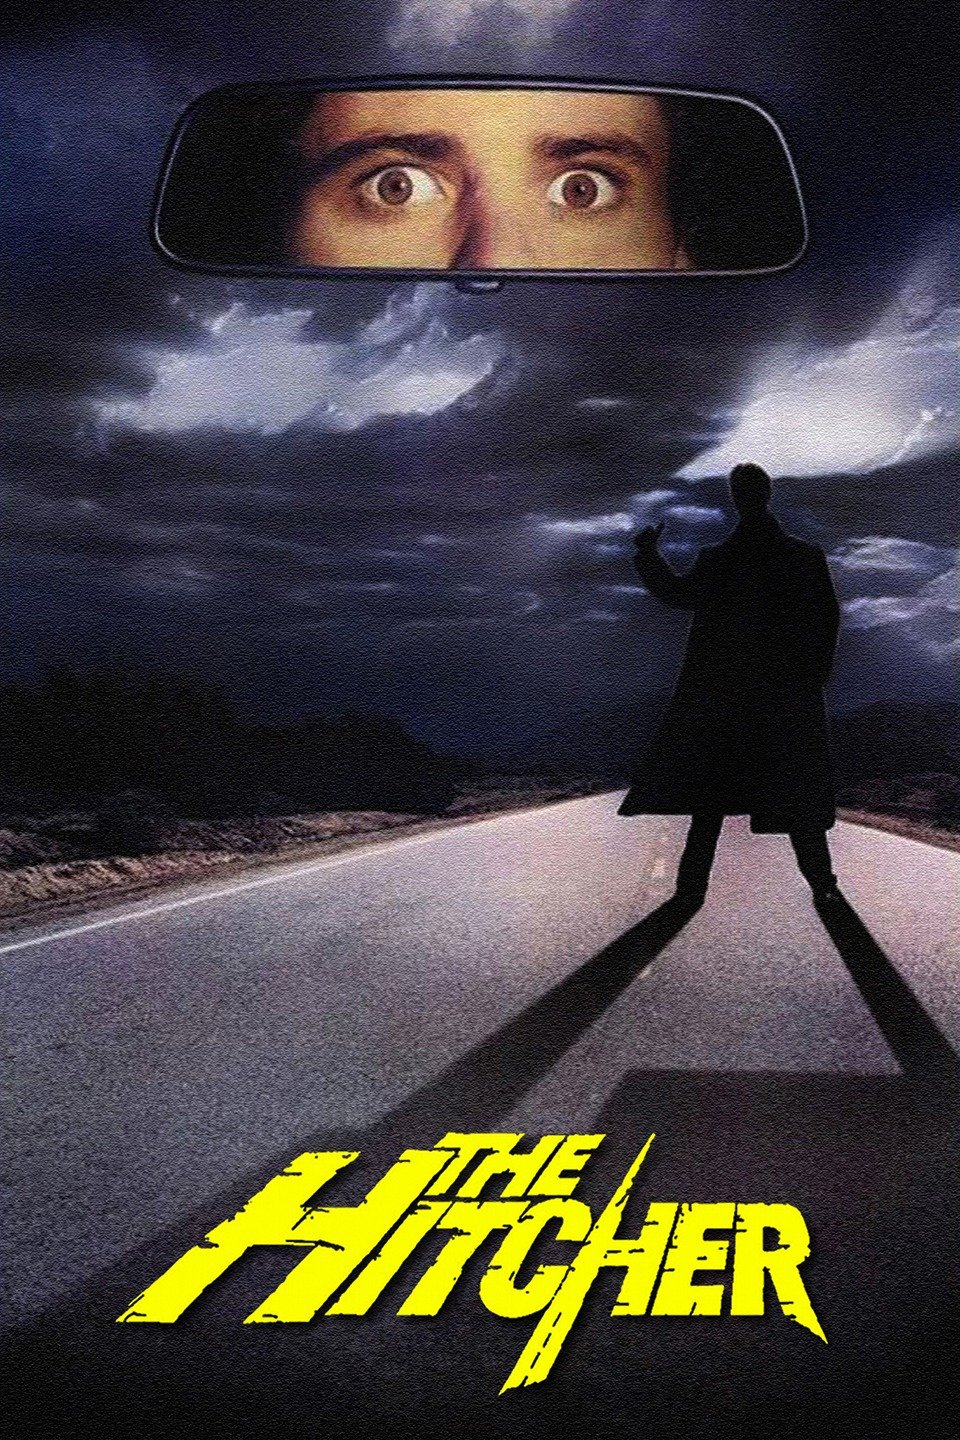 While transporting a car from Chicago to San Diego, Jim Halsey (C. Thomas Howell) picks up a hitchhiker named John Ryder (Rutger Hauer), who claims to be a serial killer. After a daring escape, Jim hopes to never see Ryder again. But when he witnesses the hitchhiker murdering an entire family, Jim pursues Ryder with the help of truck-stop waitress Nash (Jennifer Jason Leigh), pitting the rivals against each other in a deadly series of car chases and brutal murders.